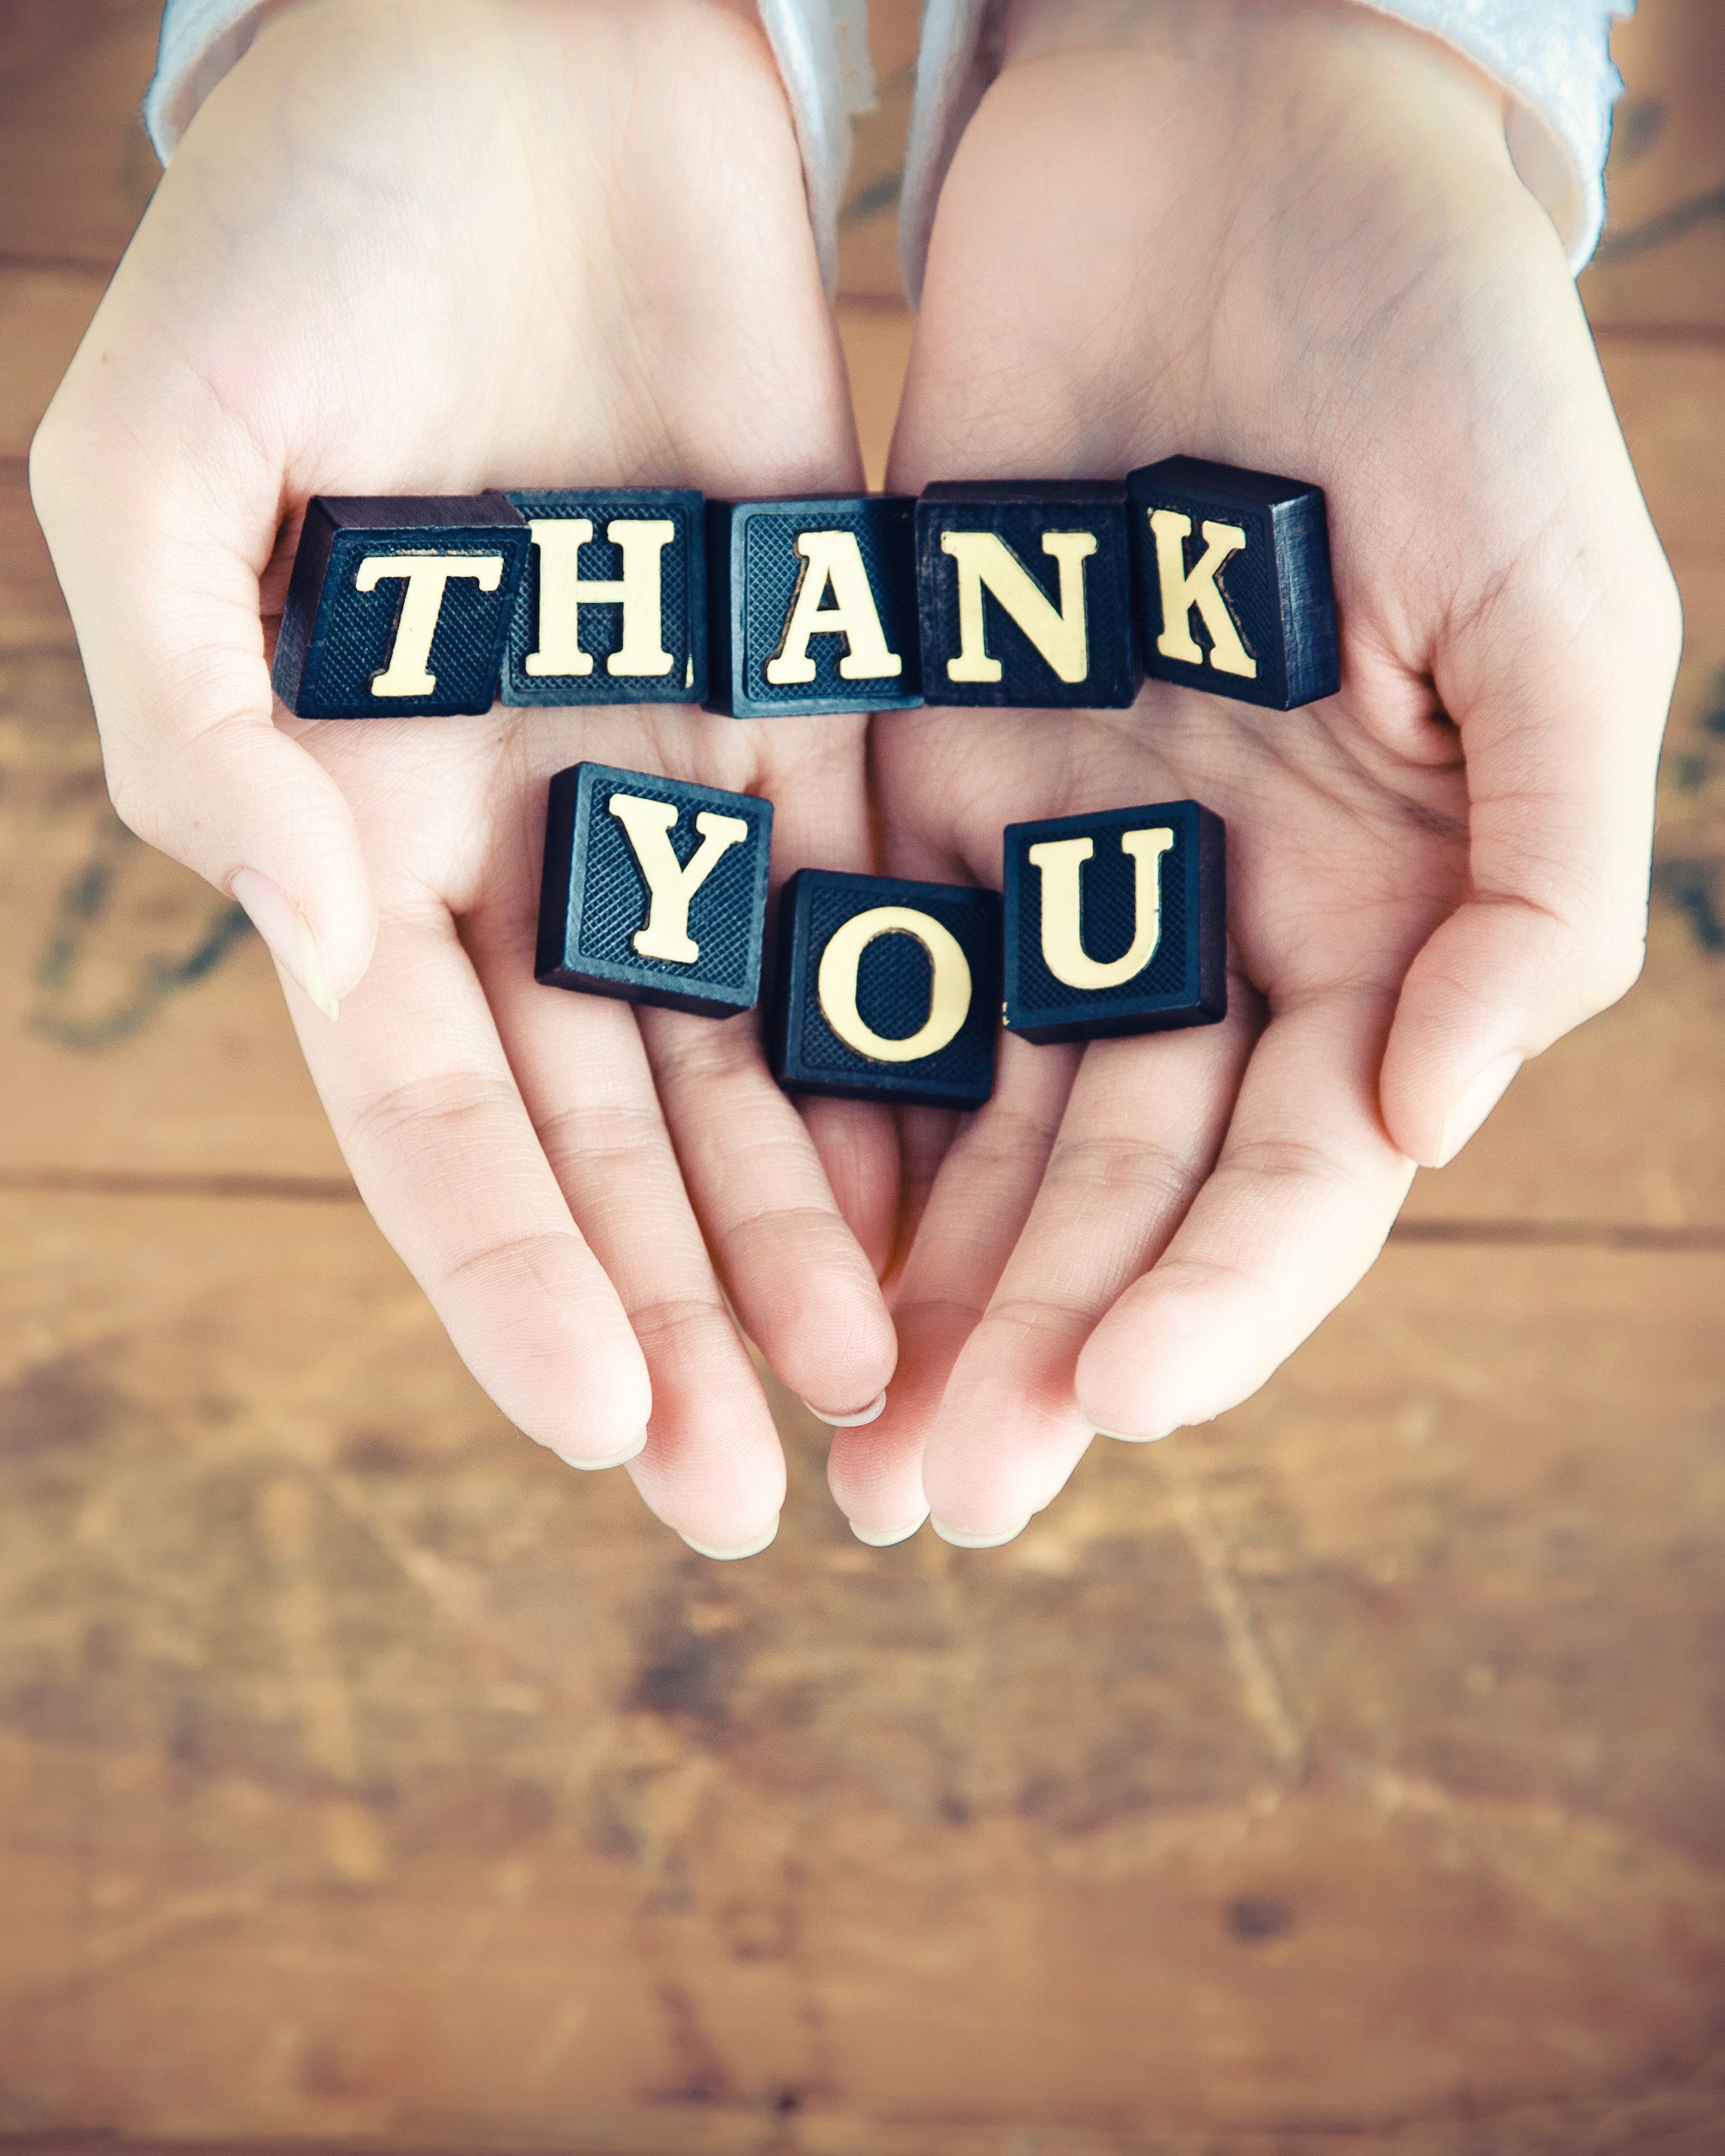 Thank you written in cupped hands.